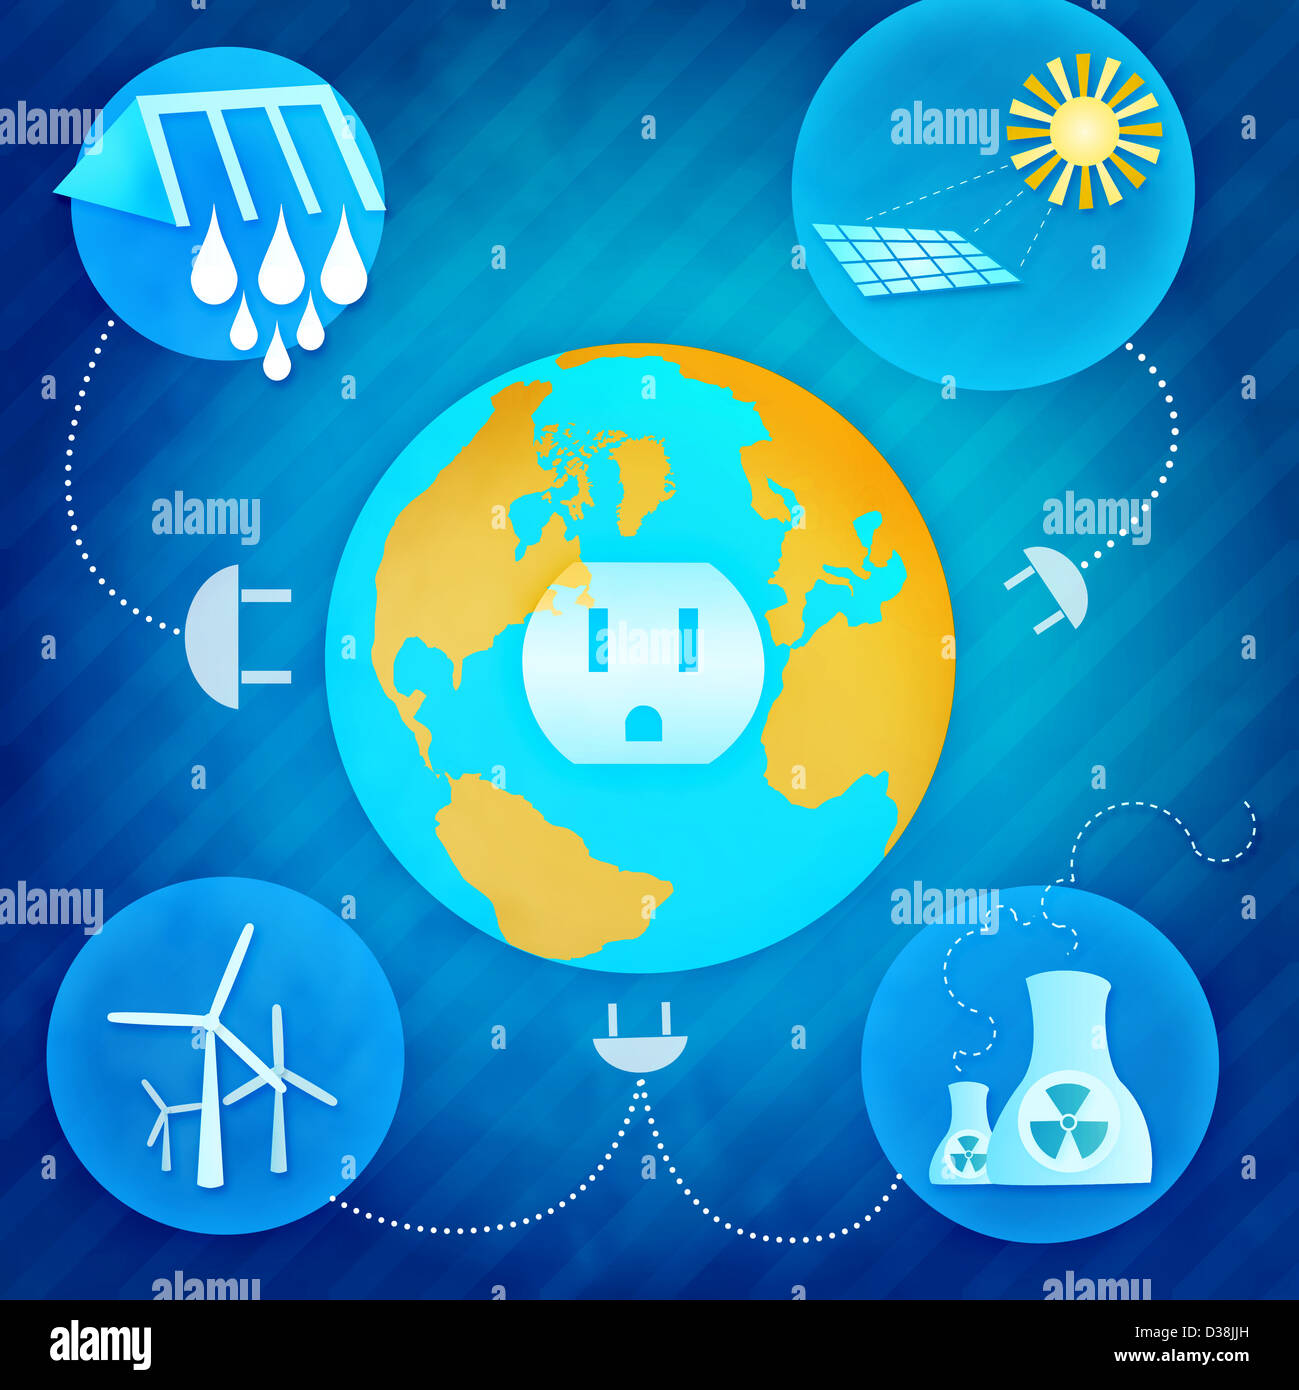 Resources of electricity production - Stock Image